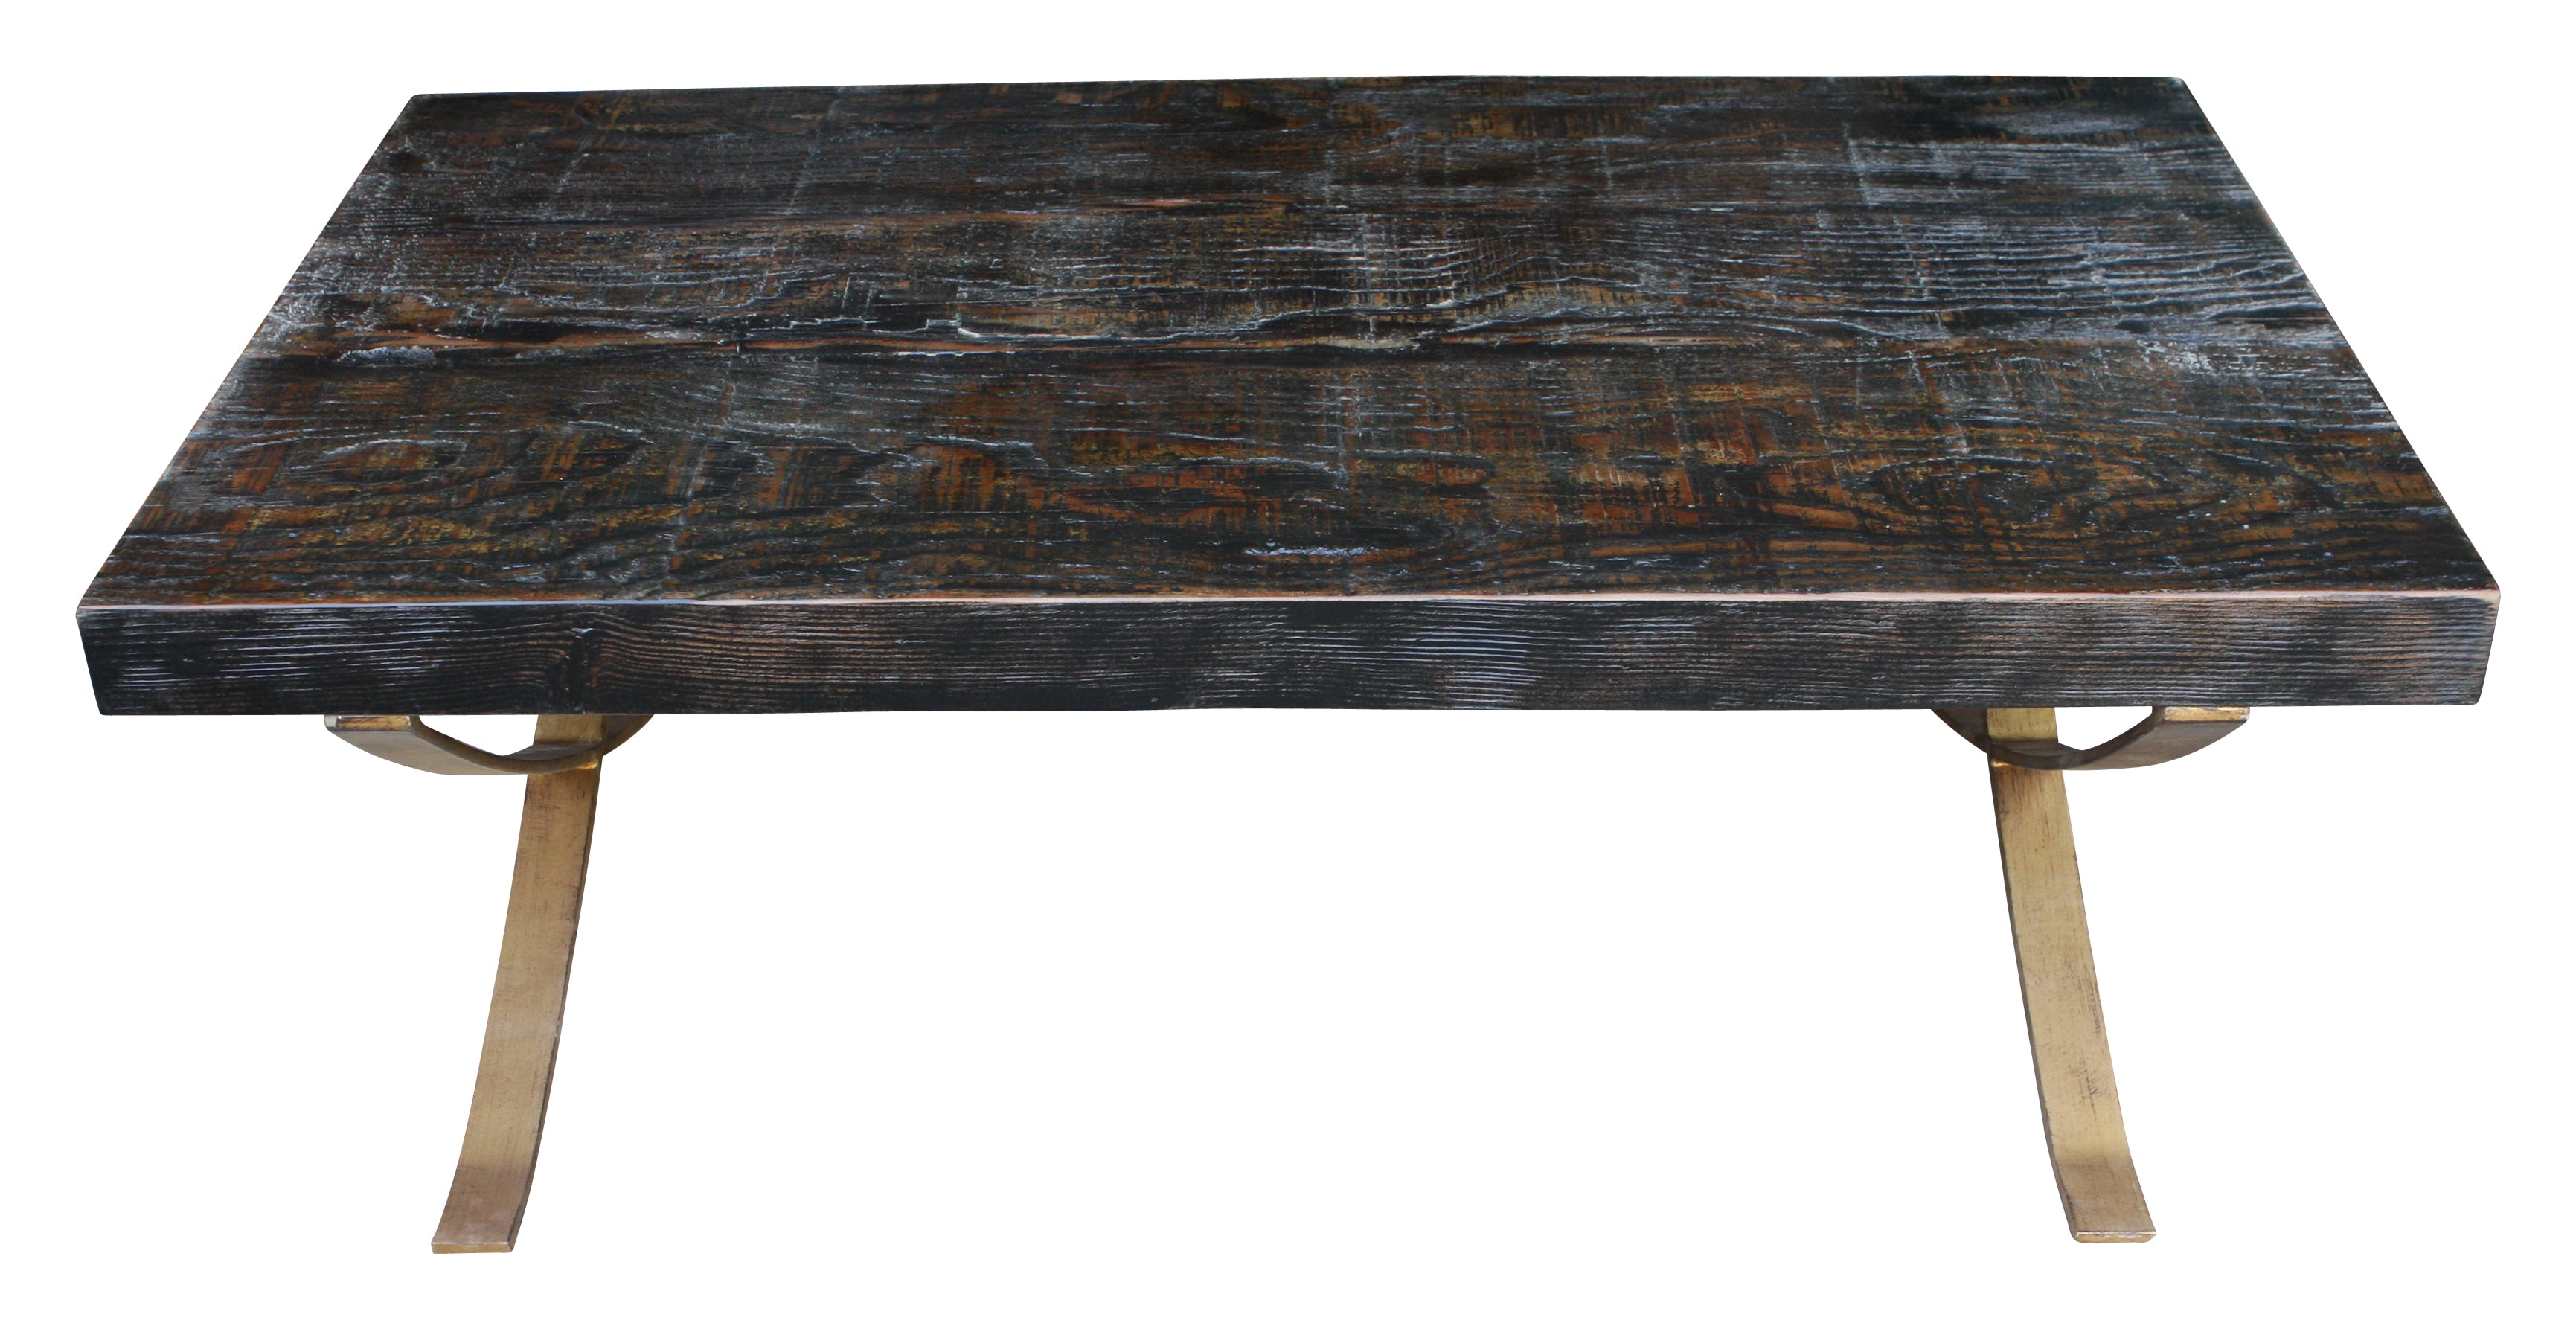 City Reclaimed Wood Coffee Table – Mortise & Tenon